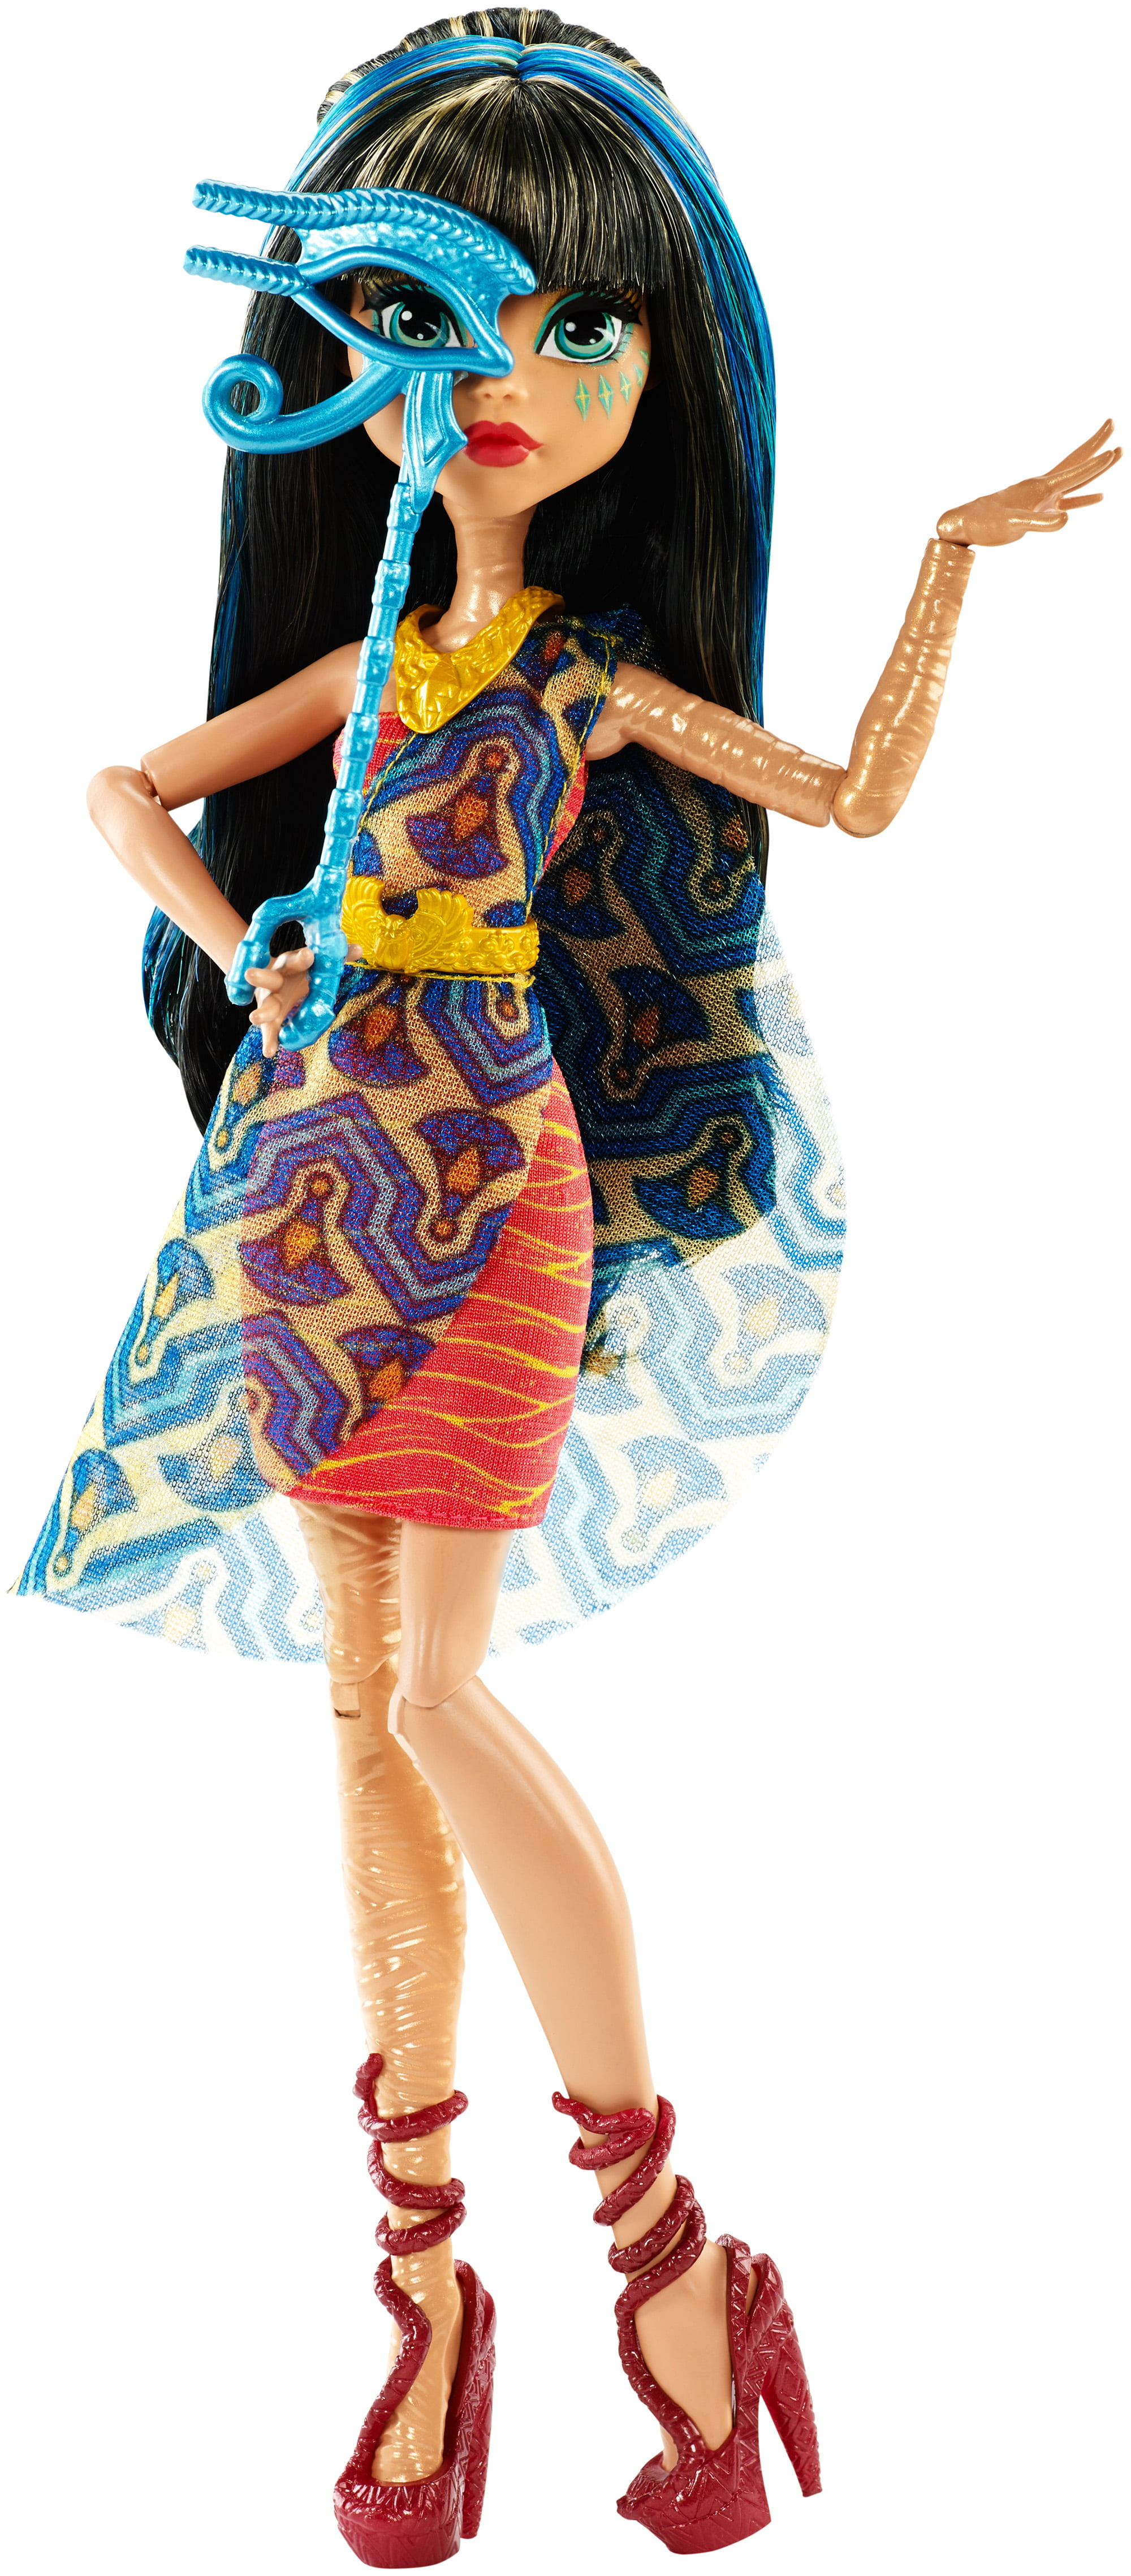 Monster High Welcome to Monster High Cleo de Nile Doll by MATTEL INC.